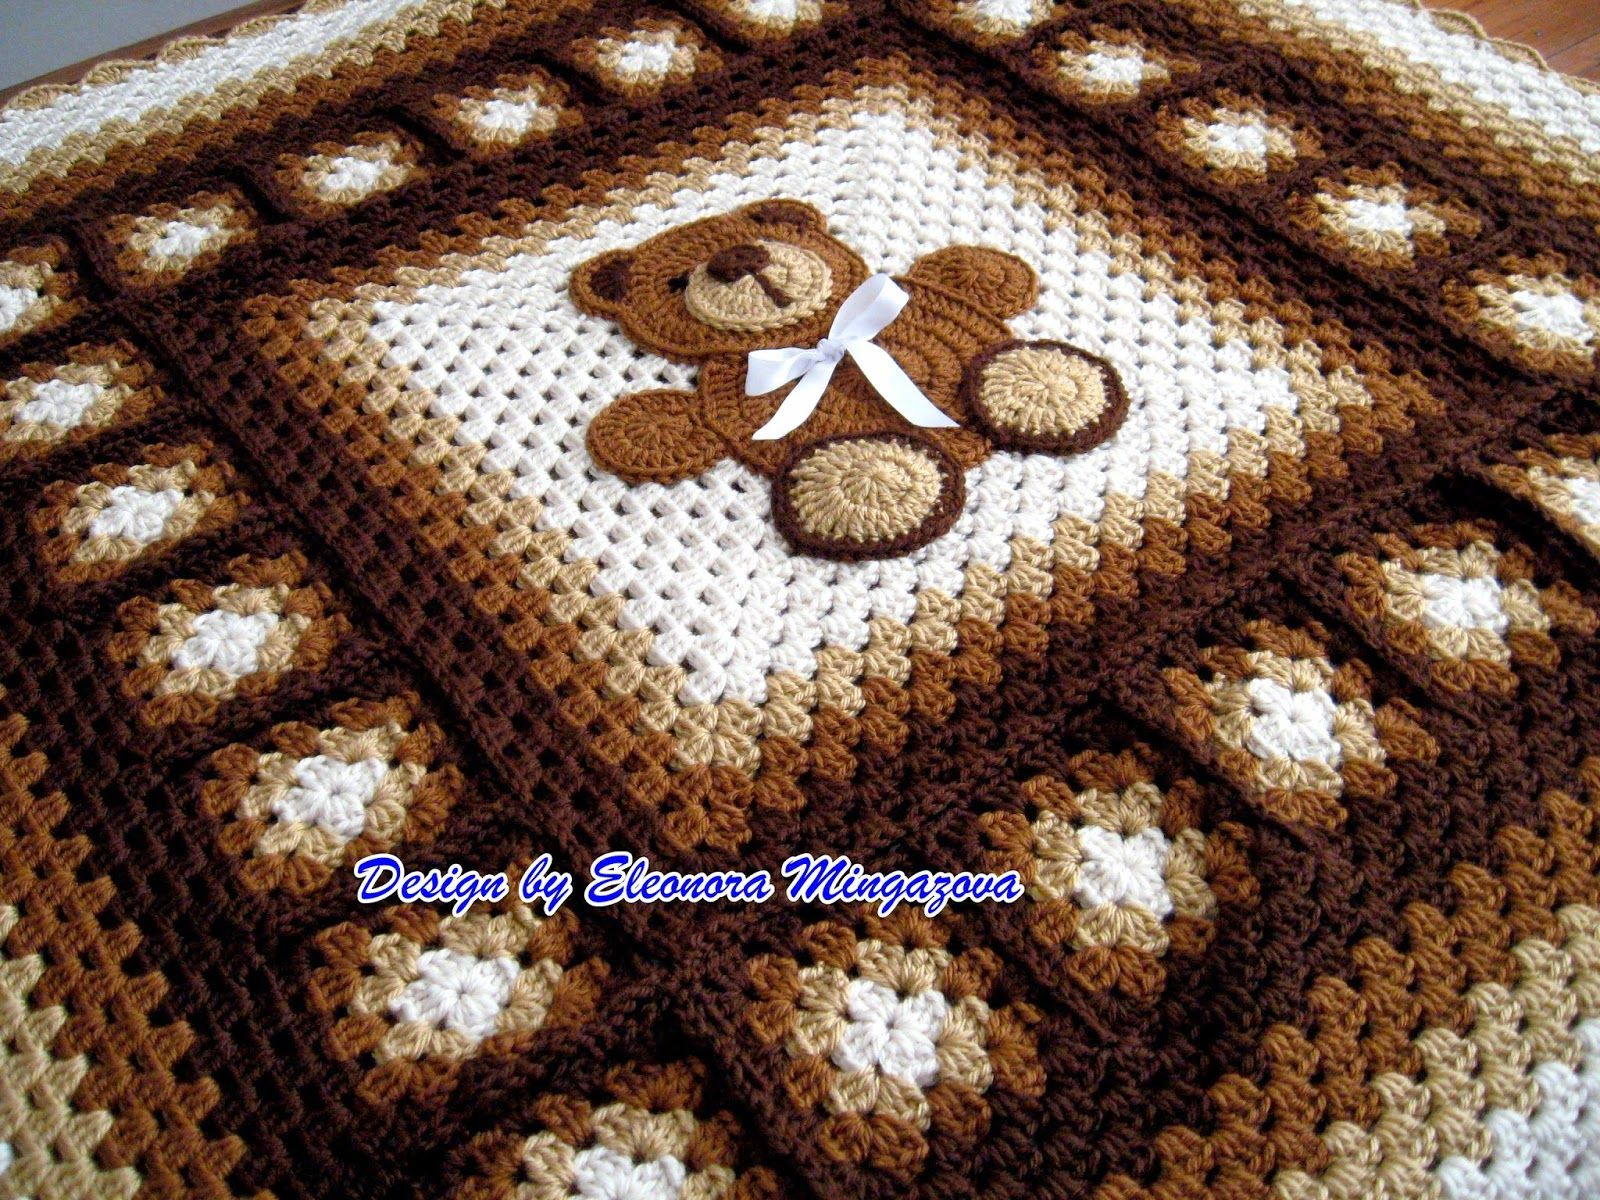 Love crochet teddy bear blanket 39 by 39 crochet afghans pdf adorable crochet pattern to make your own crochet teddy bear blanket afghan throw bankloansurffo Images